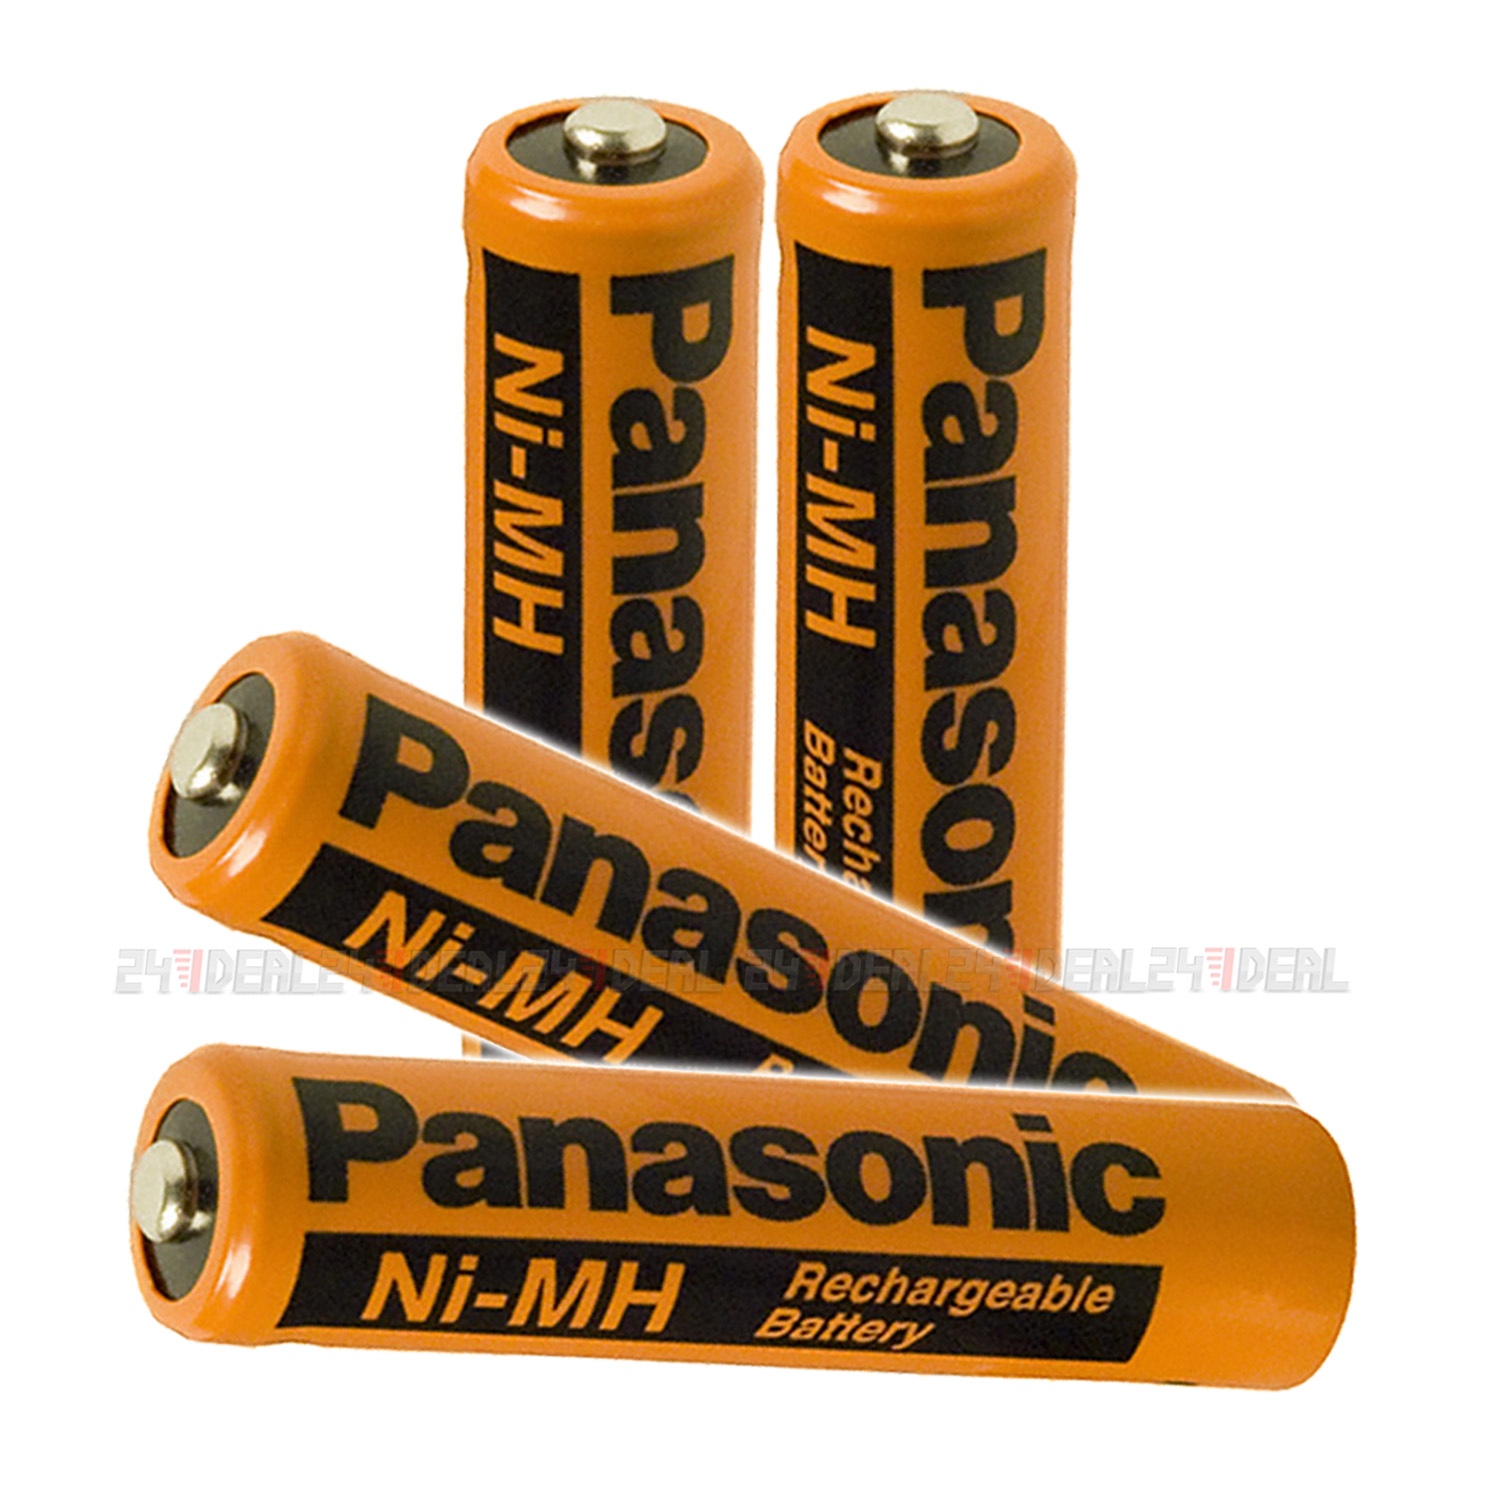 4pcs panasonic nimh aaa 700 mah rechargeable battery for cordless phones 1 2v ebay. Black Bedroom Furniture Sets. Home Design Ideas